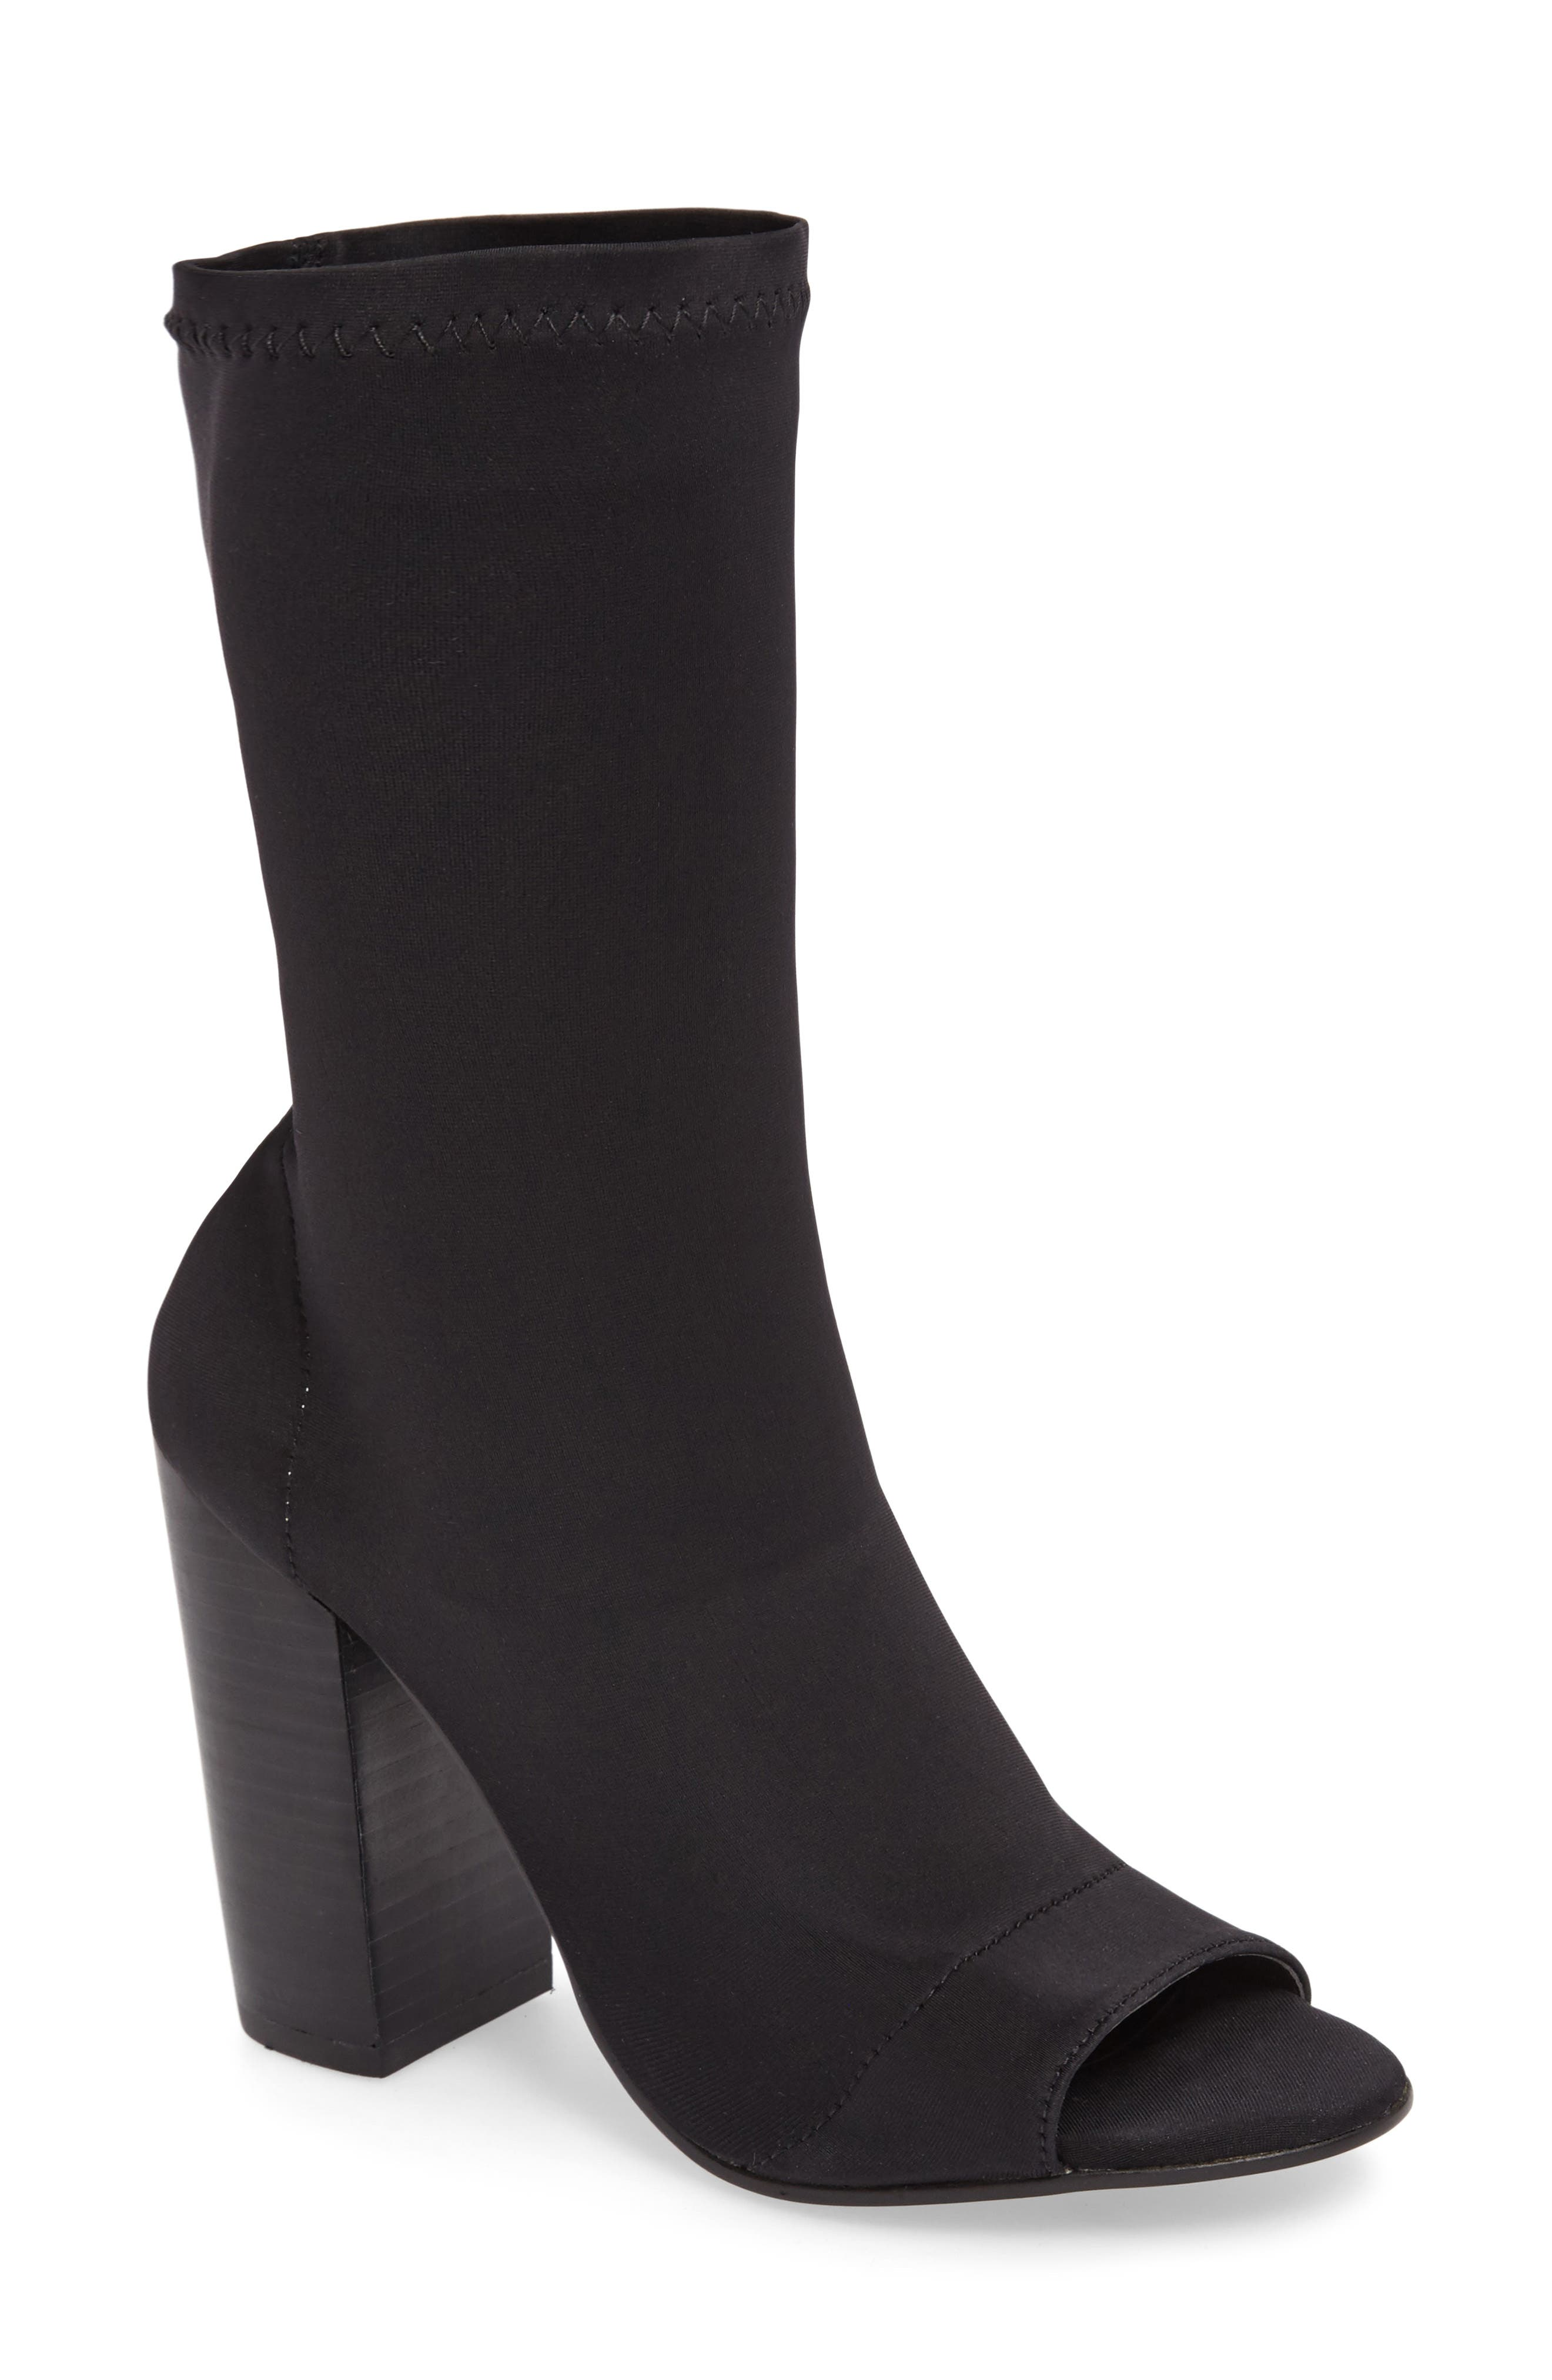 Malo Open Toe Stretch Bootie,                             Main thumbnail 1, color,                             001